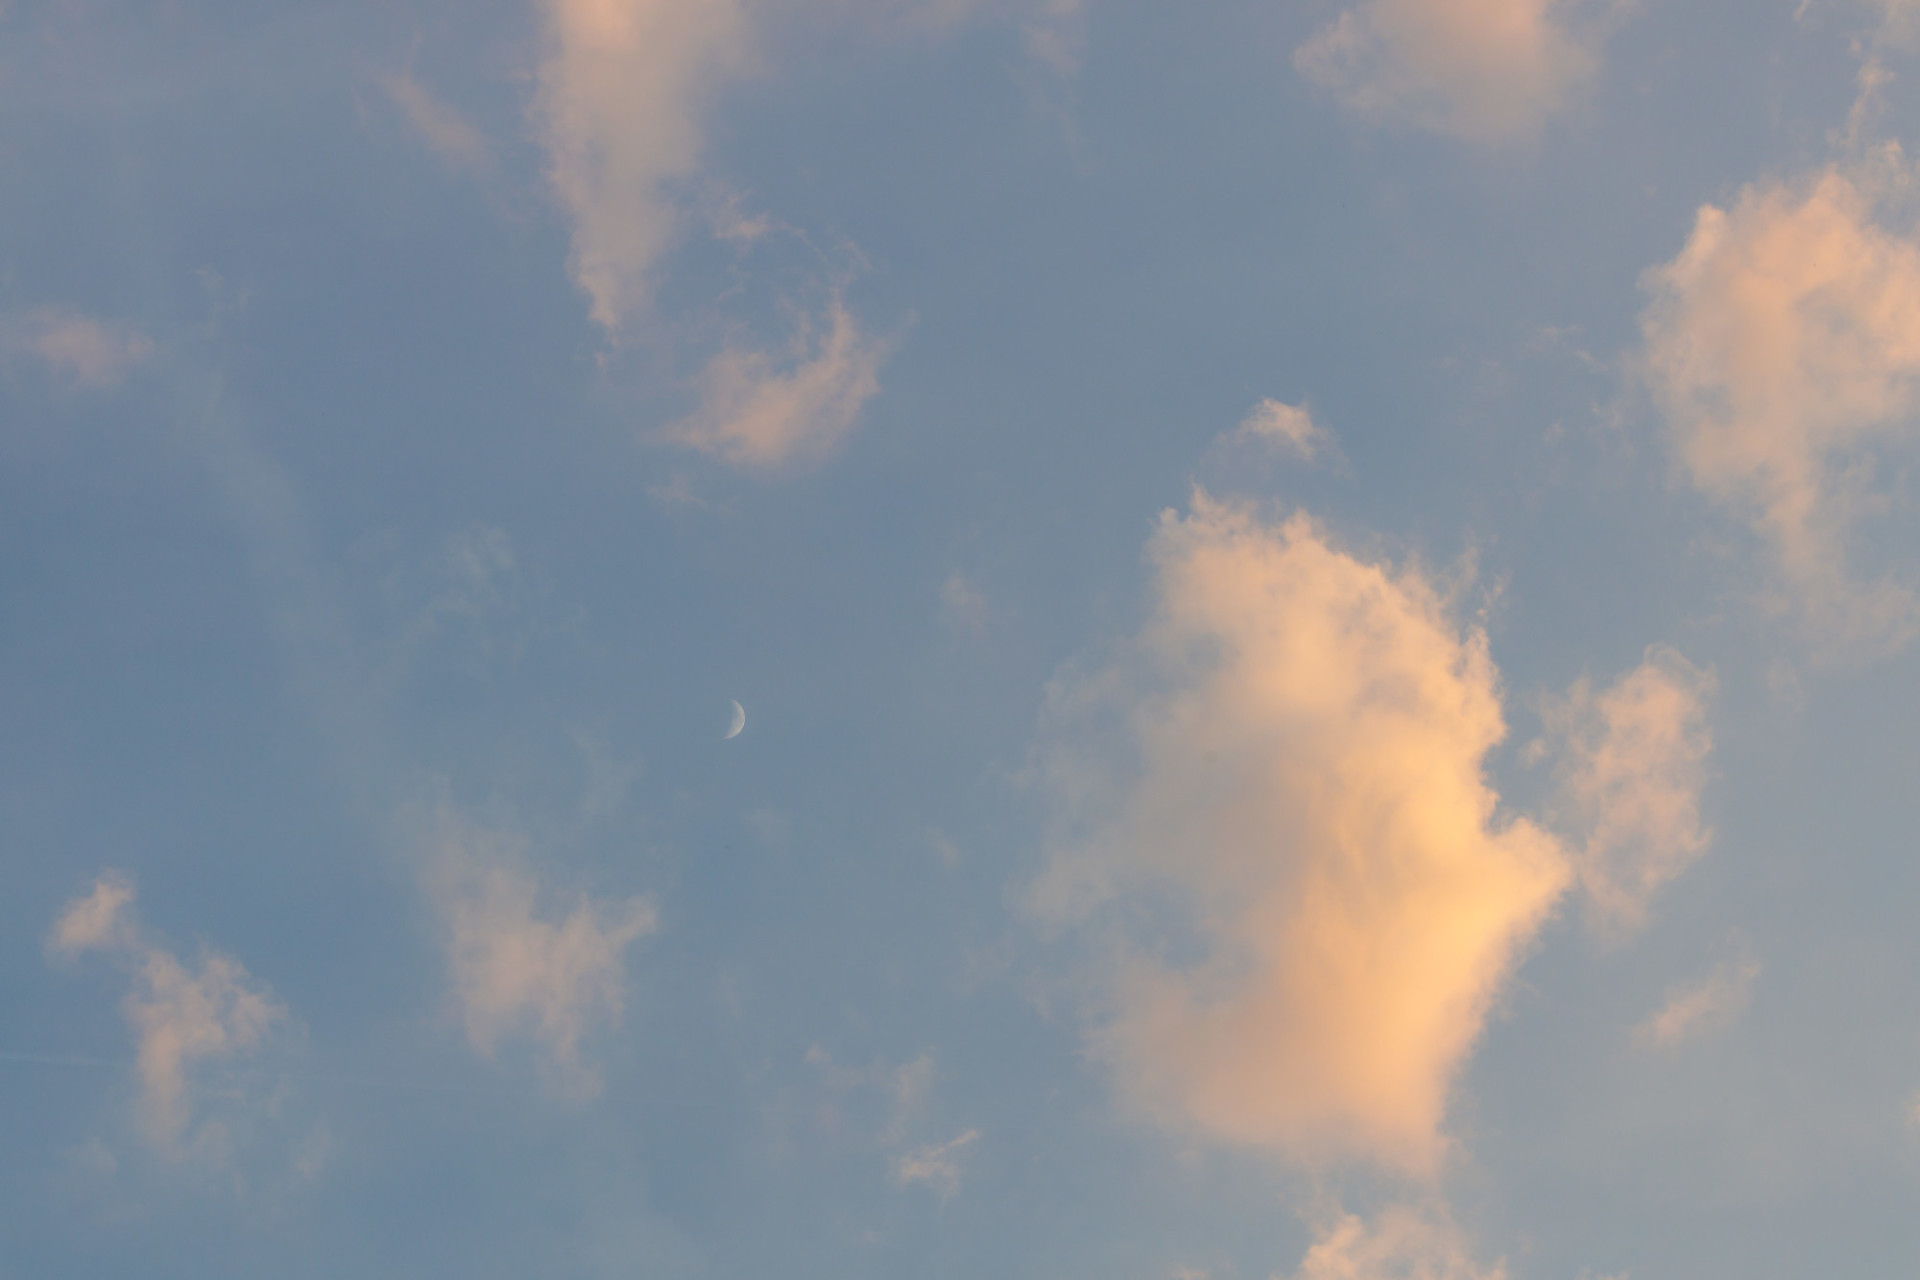 Horizontally photographed sky at evening time with clouds and the moon